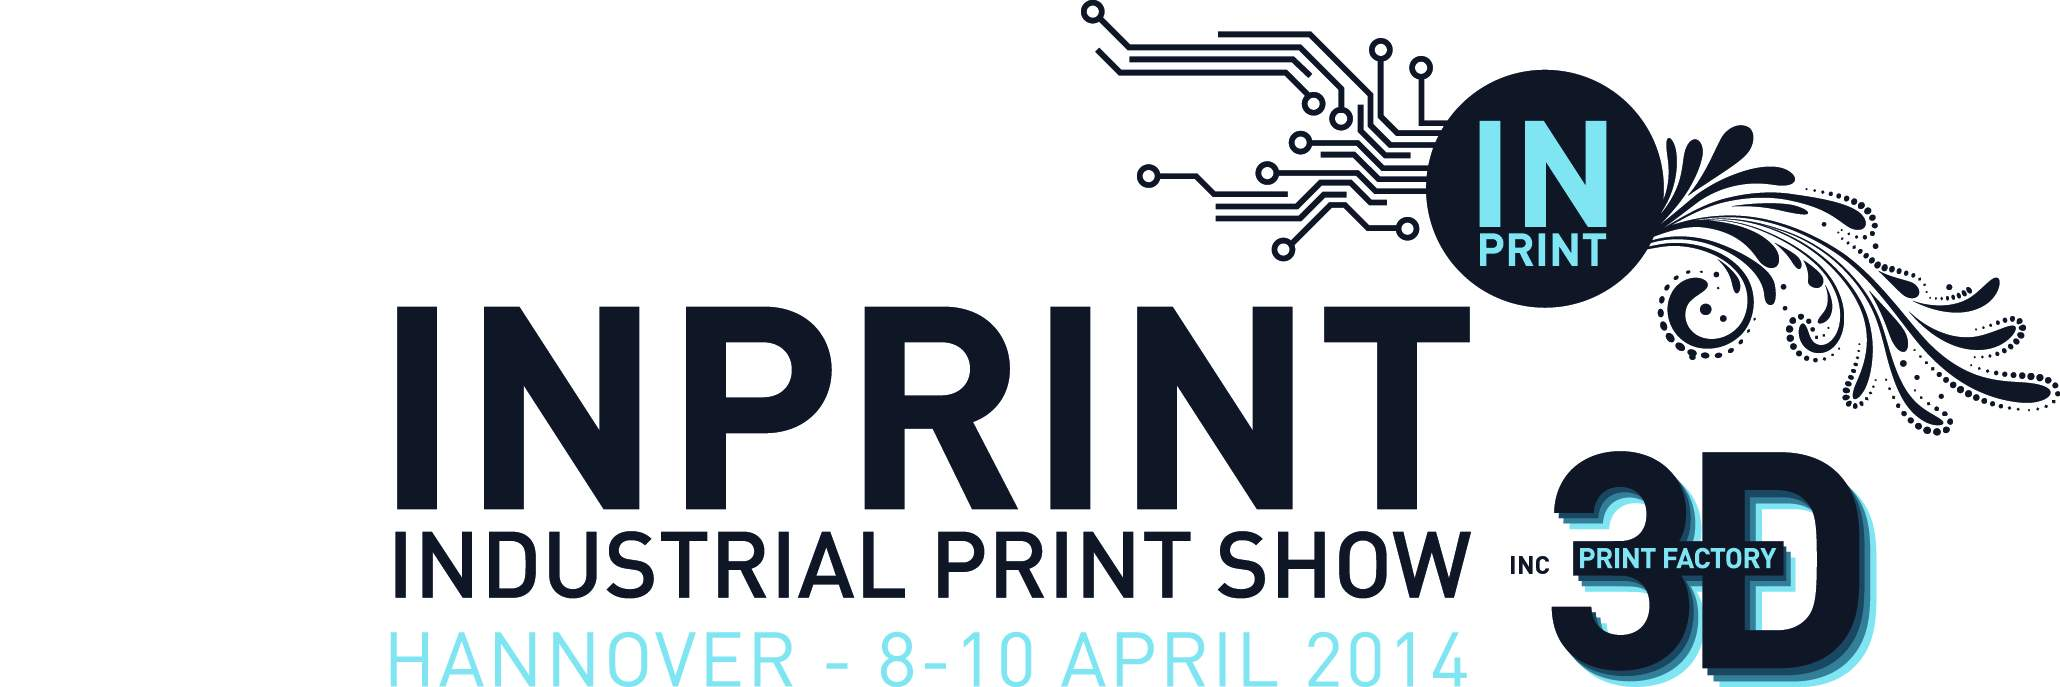 Inprint logo 3D Dates